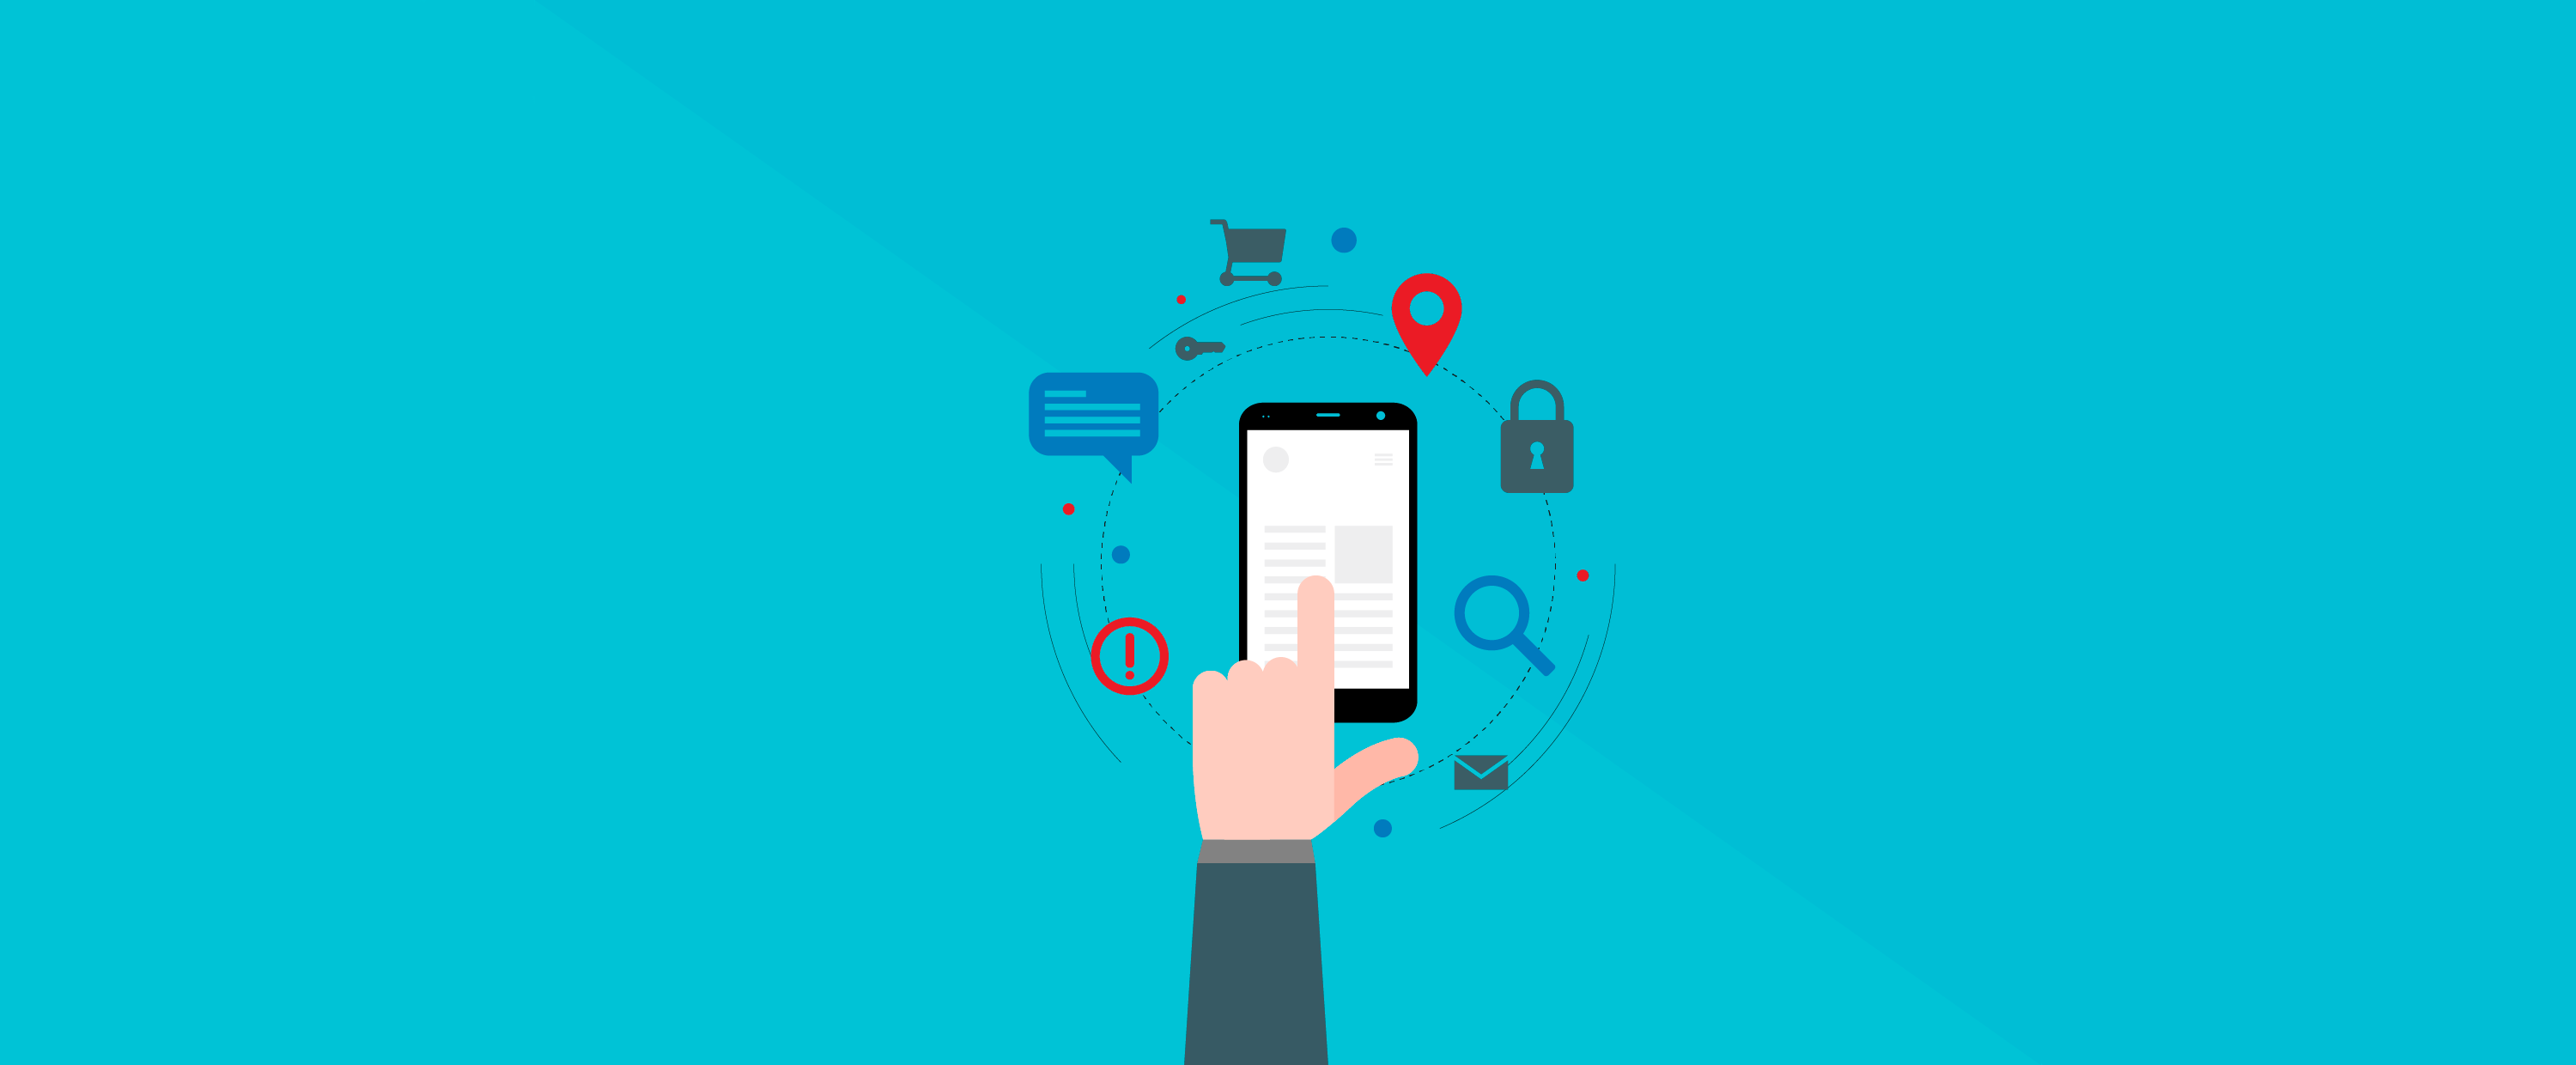 Best android apps for prototyping - theuxblog com